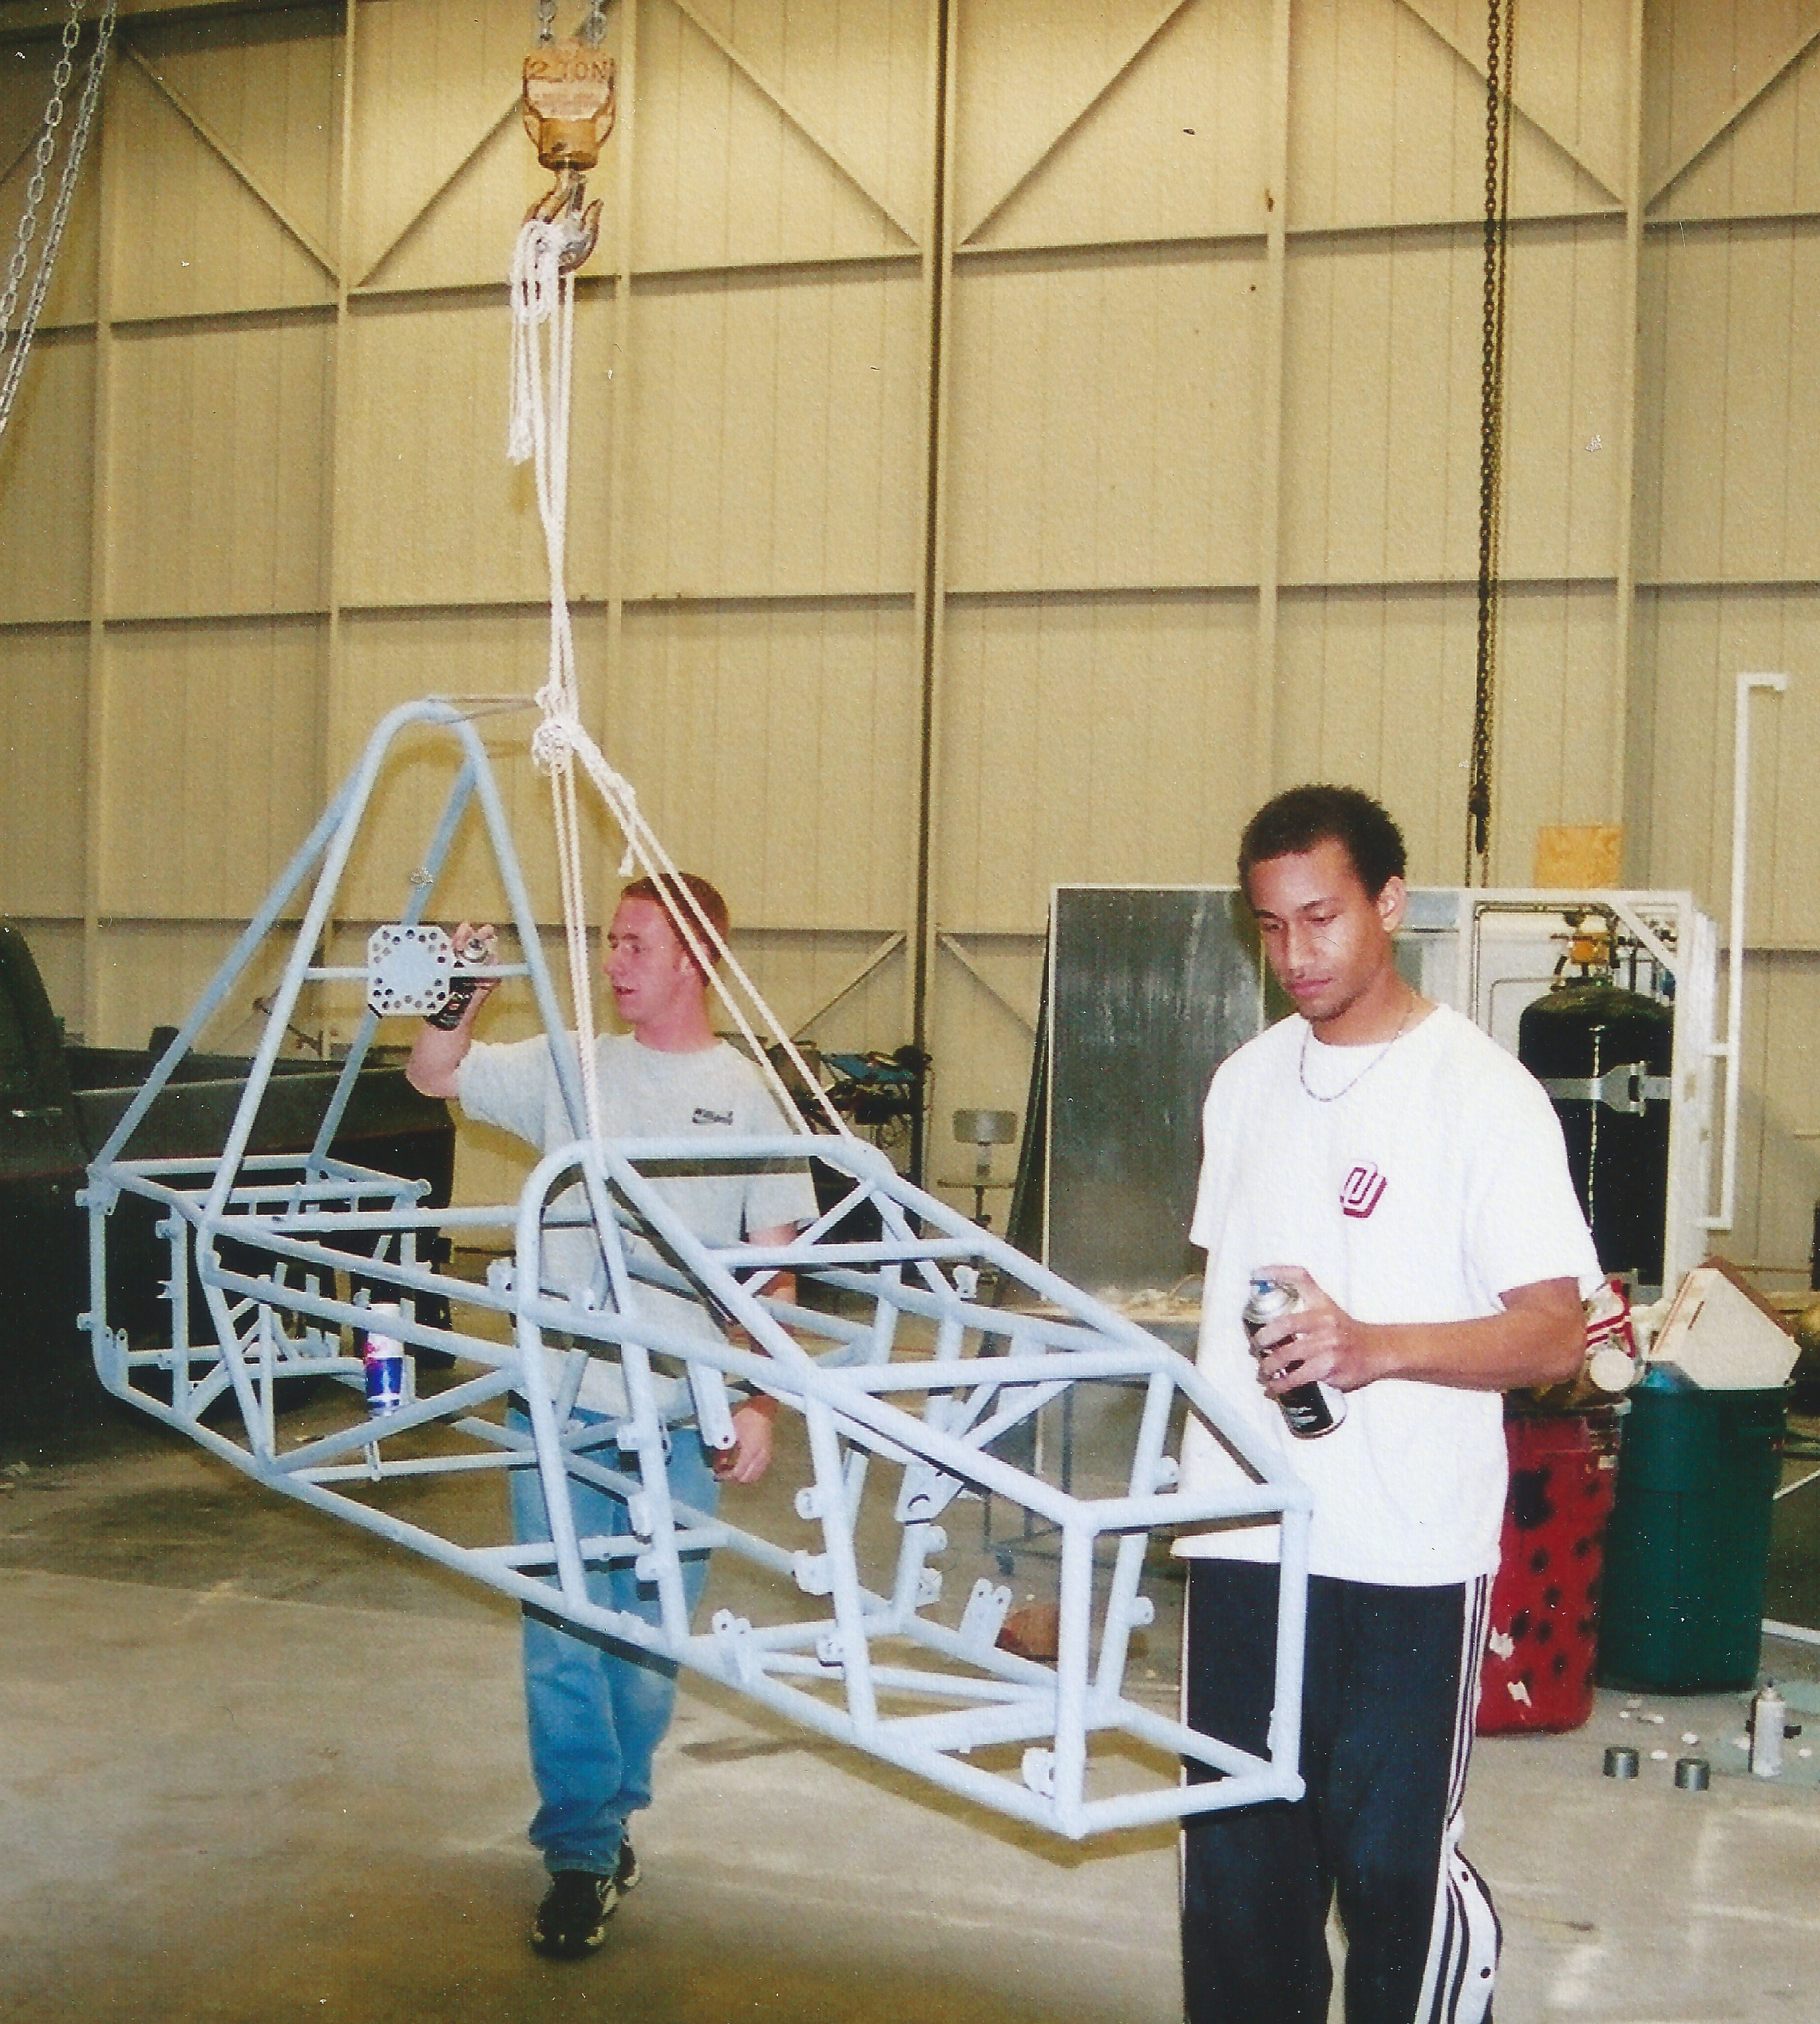 Devin (pictured right) and teammate working on the Sooner Racing Team car in 2001.